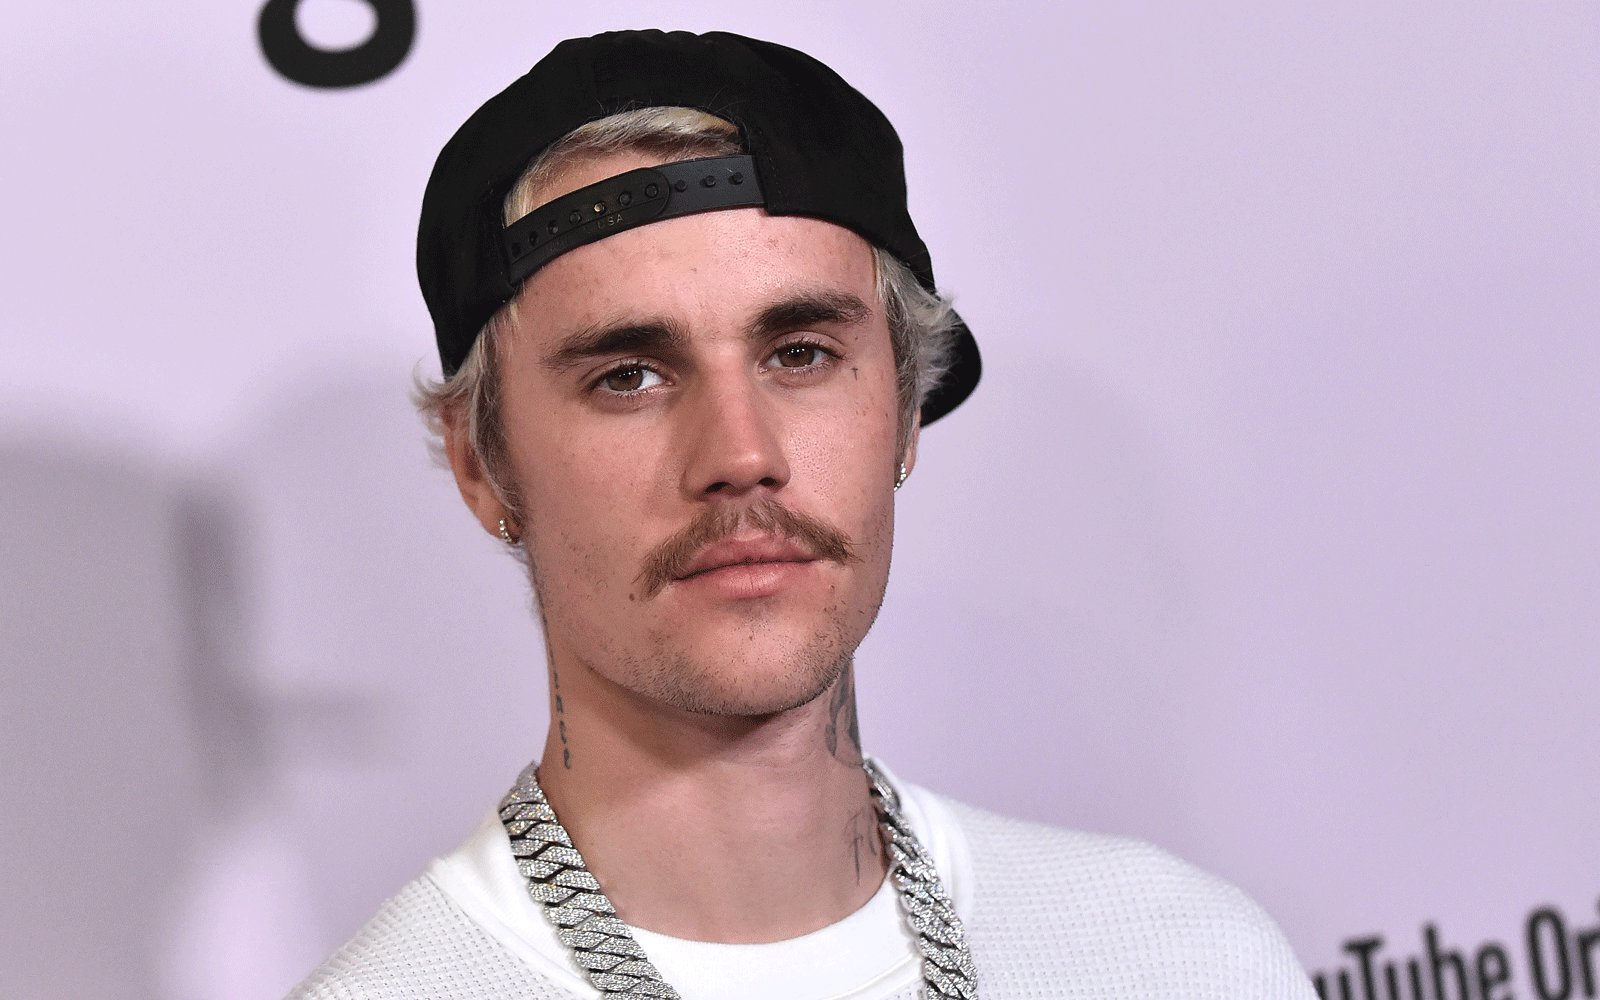 Justin Bieber Donates to Chinese Charity for Coronavirus: 'We Need to Be There for Each Other'